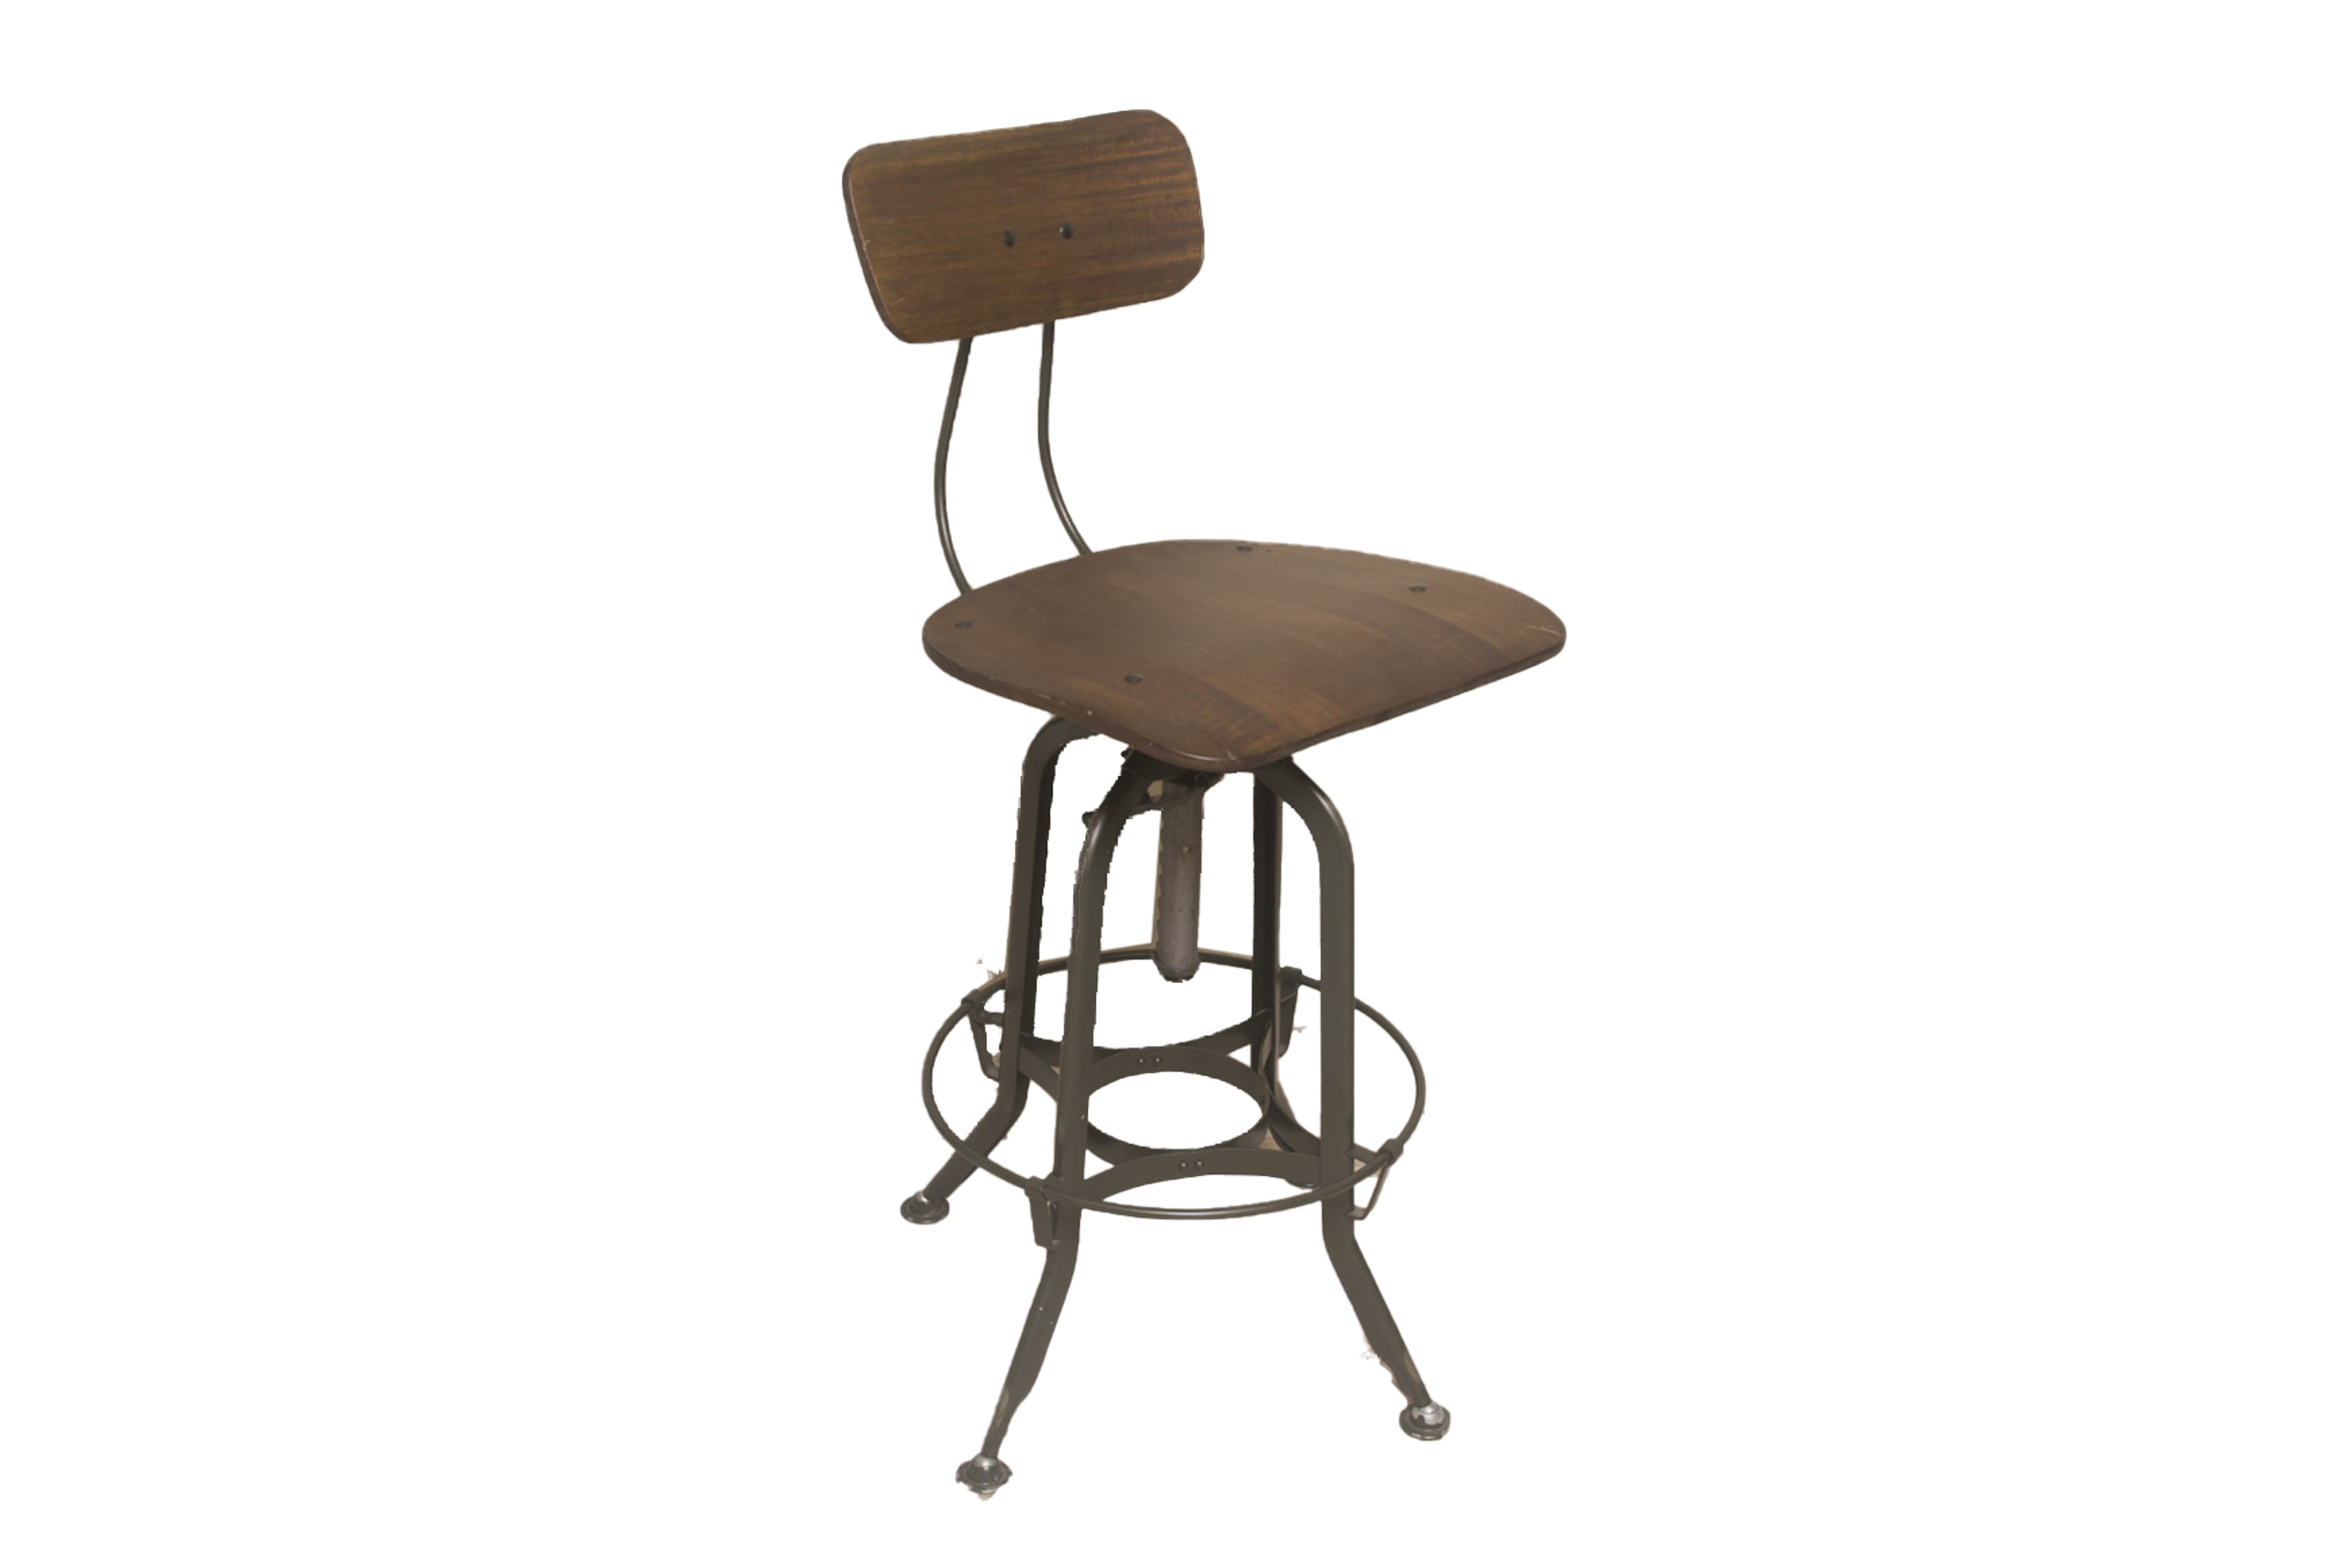 Metal and Wooden Drafting Chair